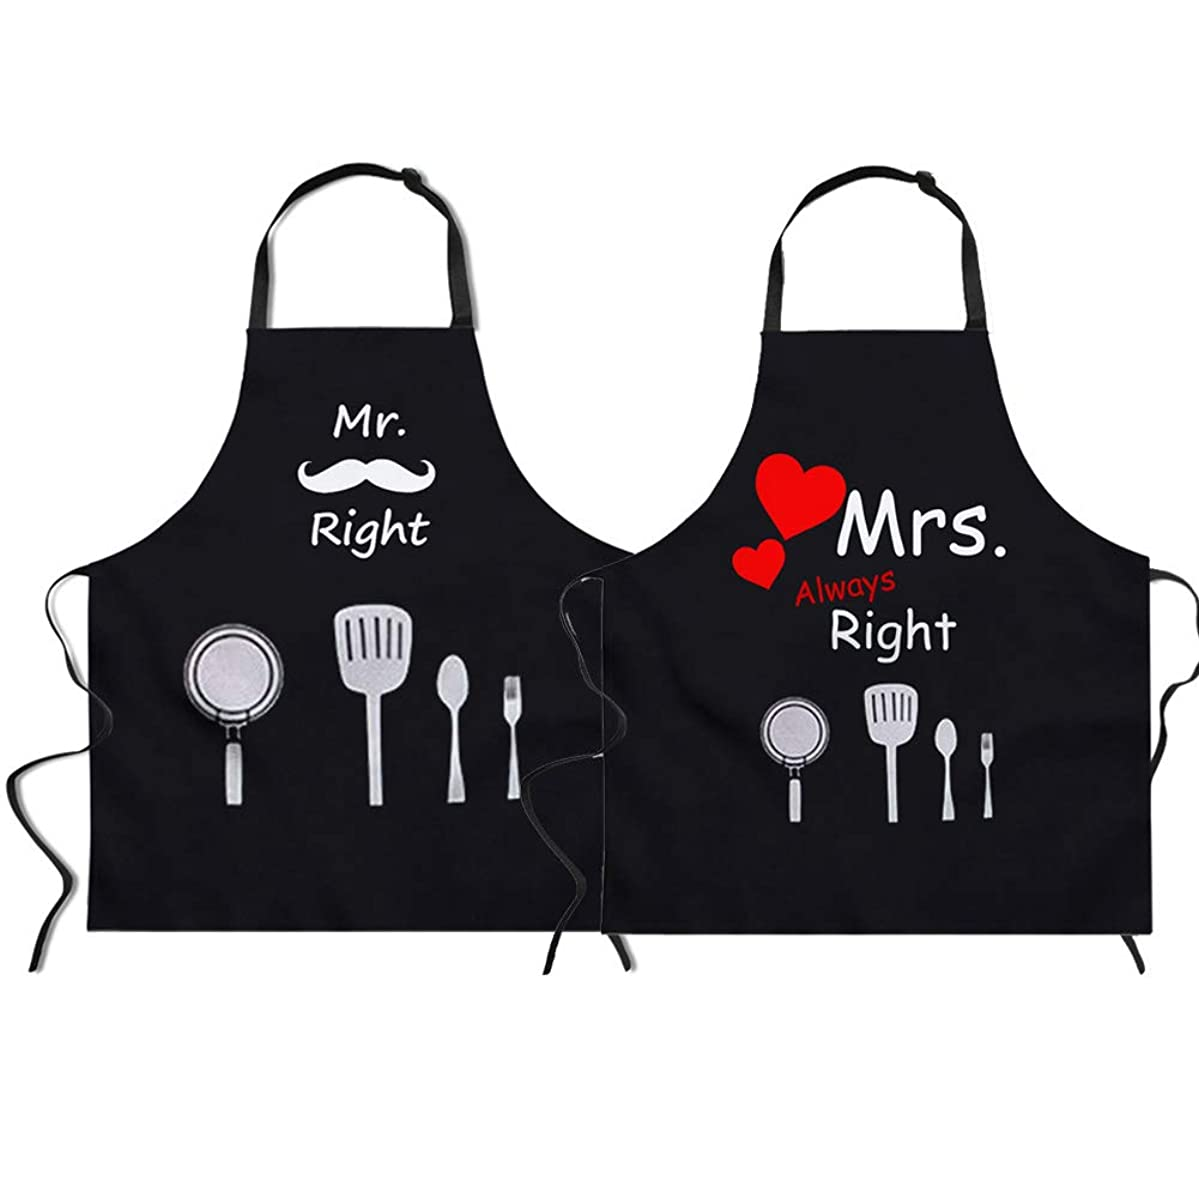 Upetstory Mr. and Mrs. Right Matching Aprons for Newlyweds Couples Grill Aprons Engagement Wedding Gift Set for Hubby and Wifey, Black